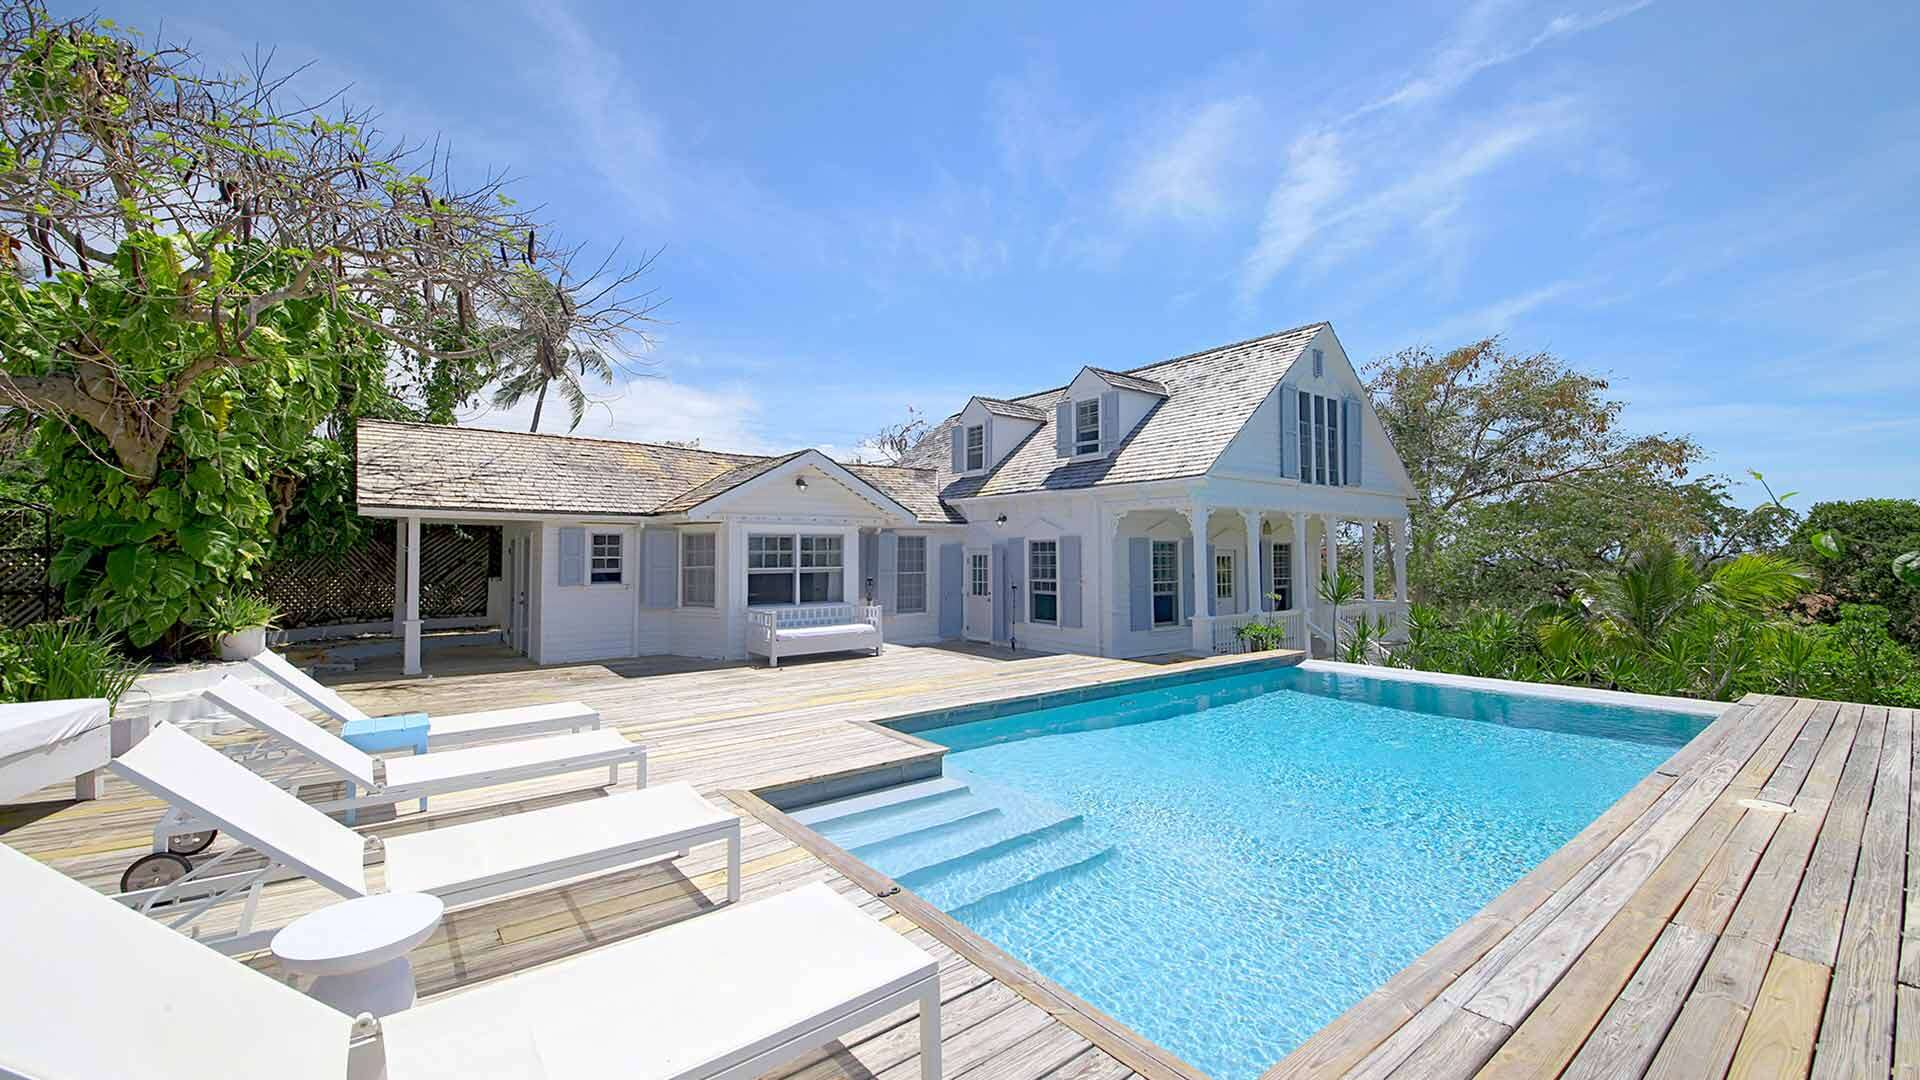 Luxury villa rentals caribbean - Bahamas - Eleuthera - Governors harbour - Mrs Russell's House - Image 1/30